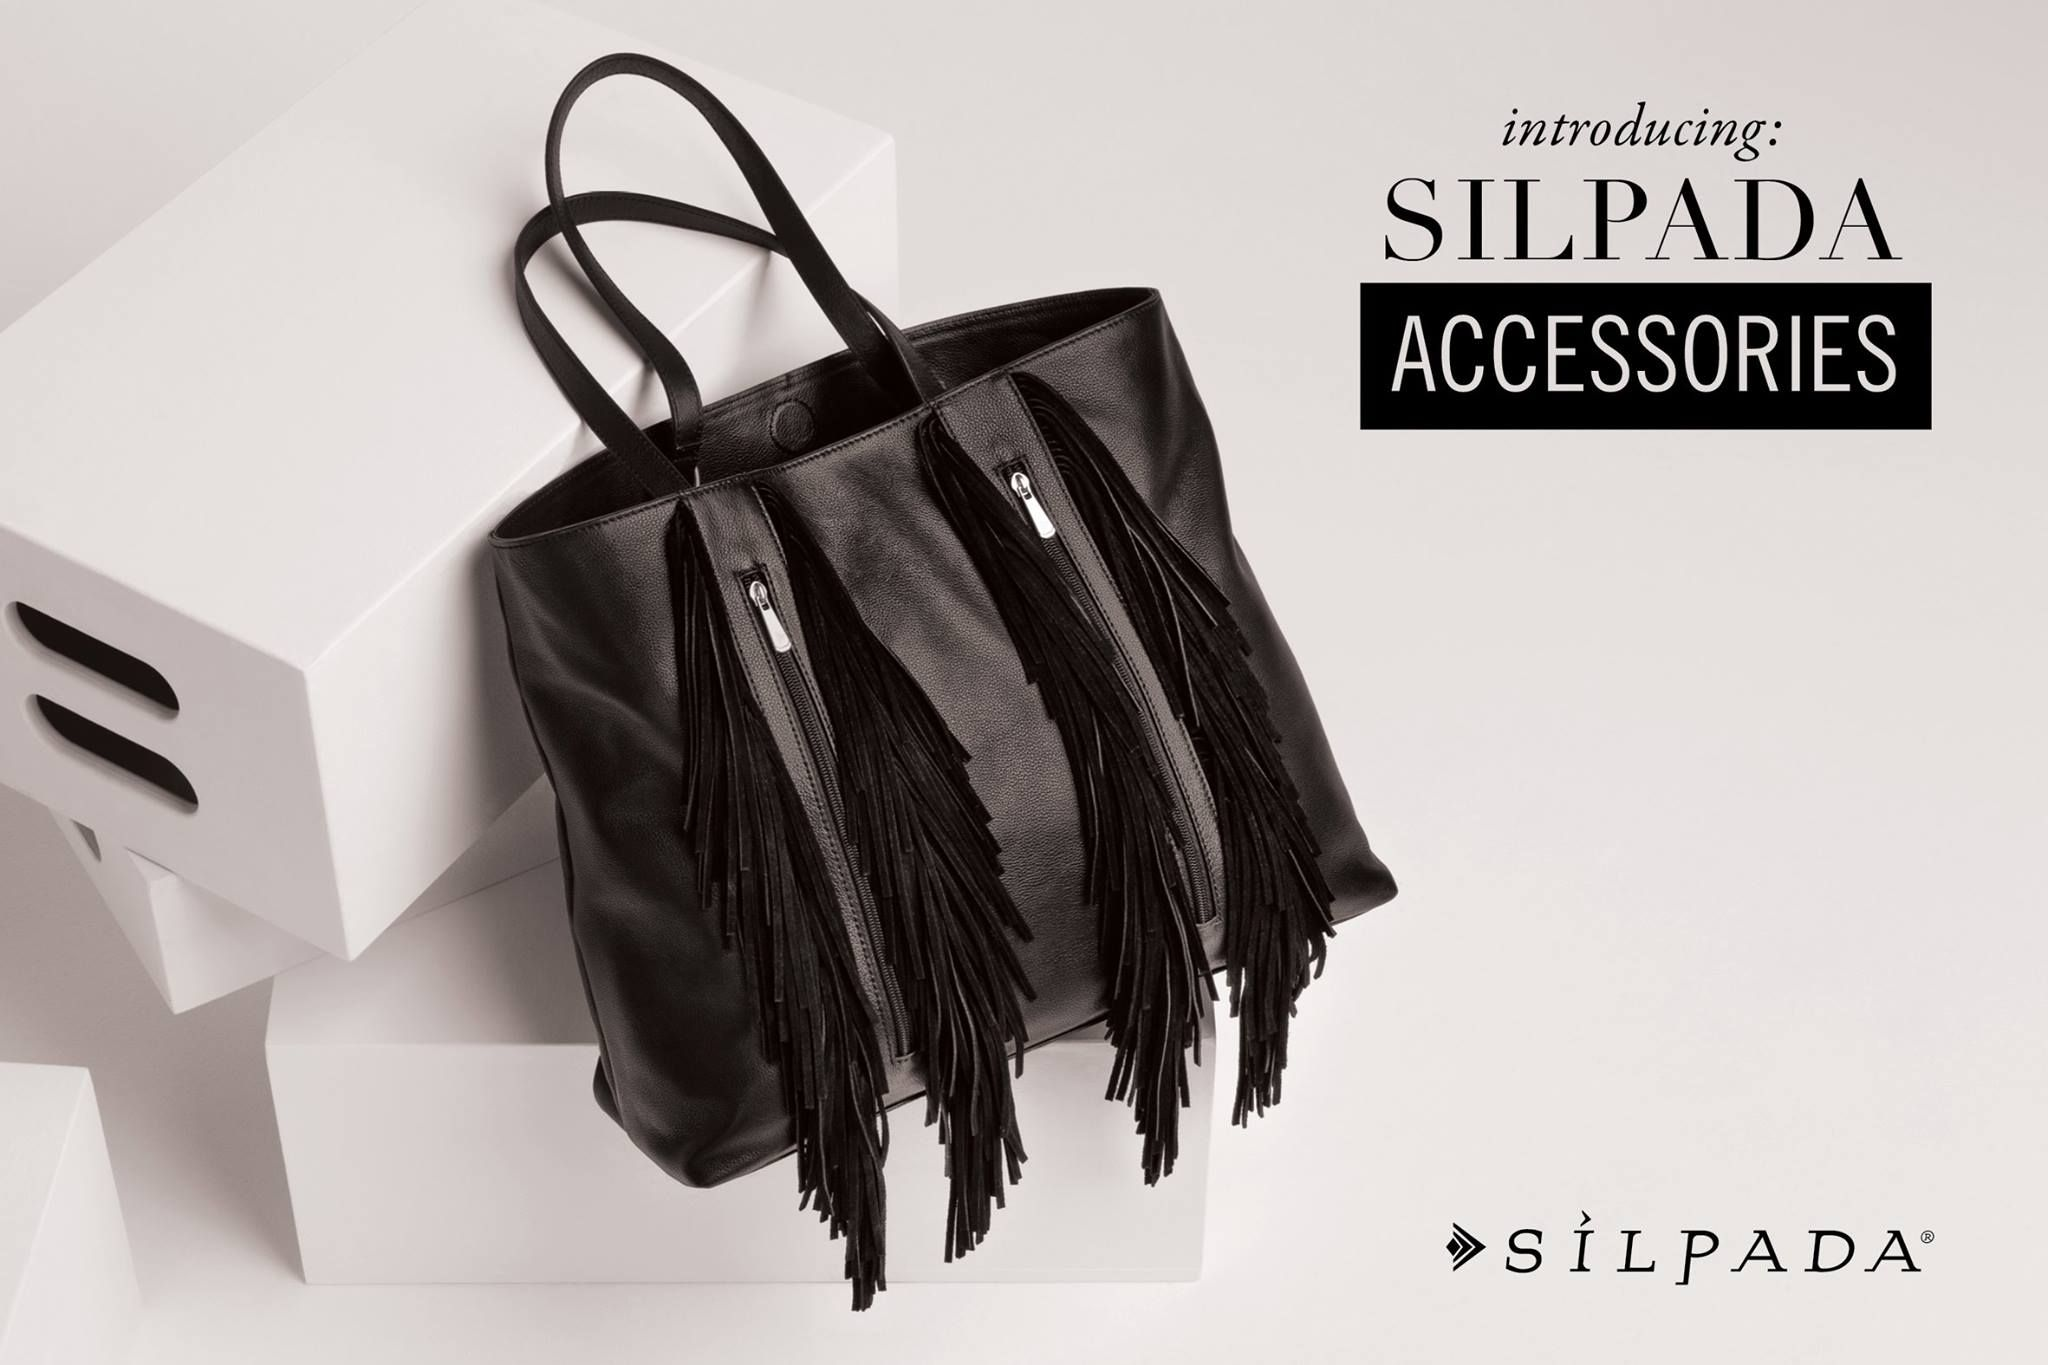 New line of accessories launches your way this July! www.mysilpada.com/nancy.lambros